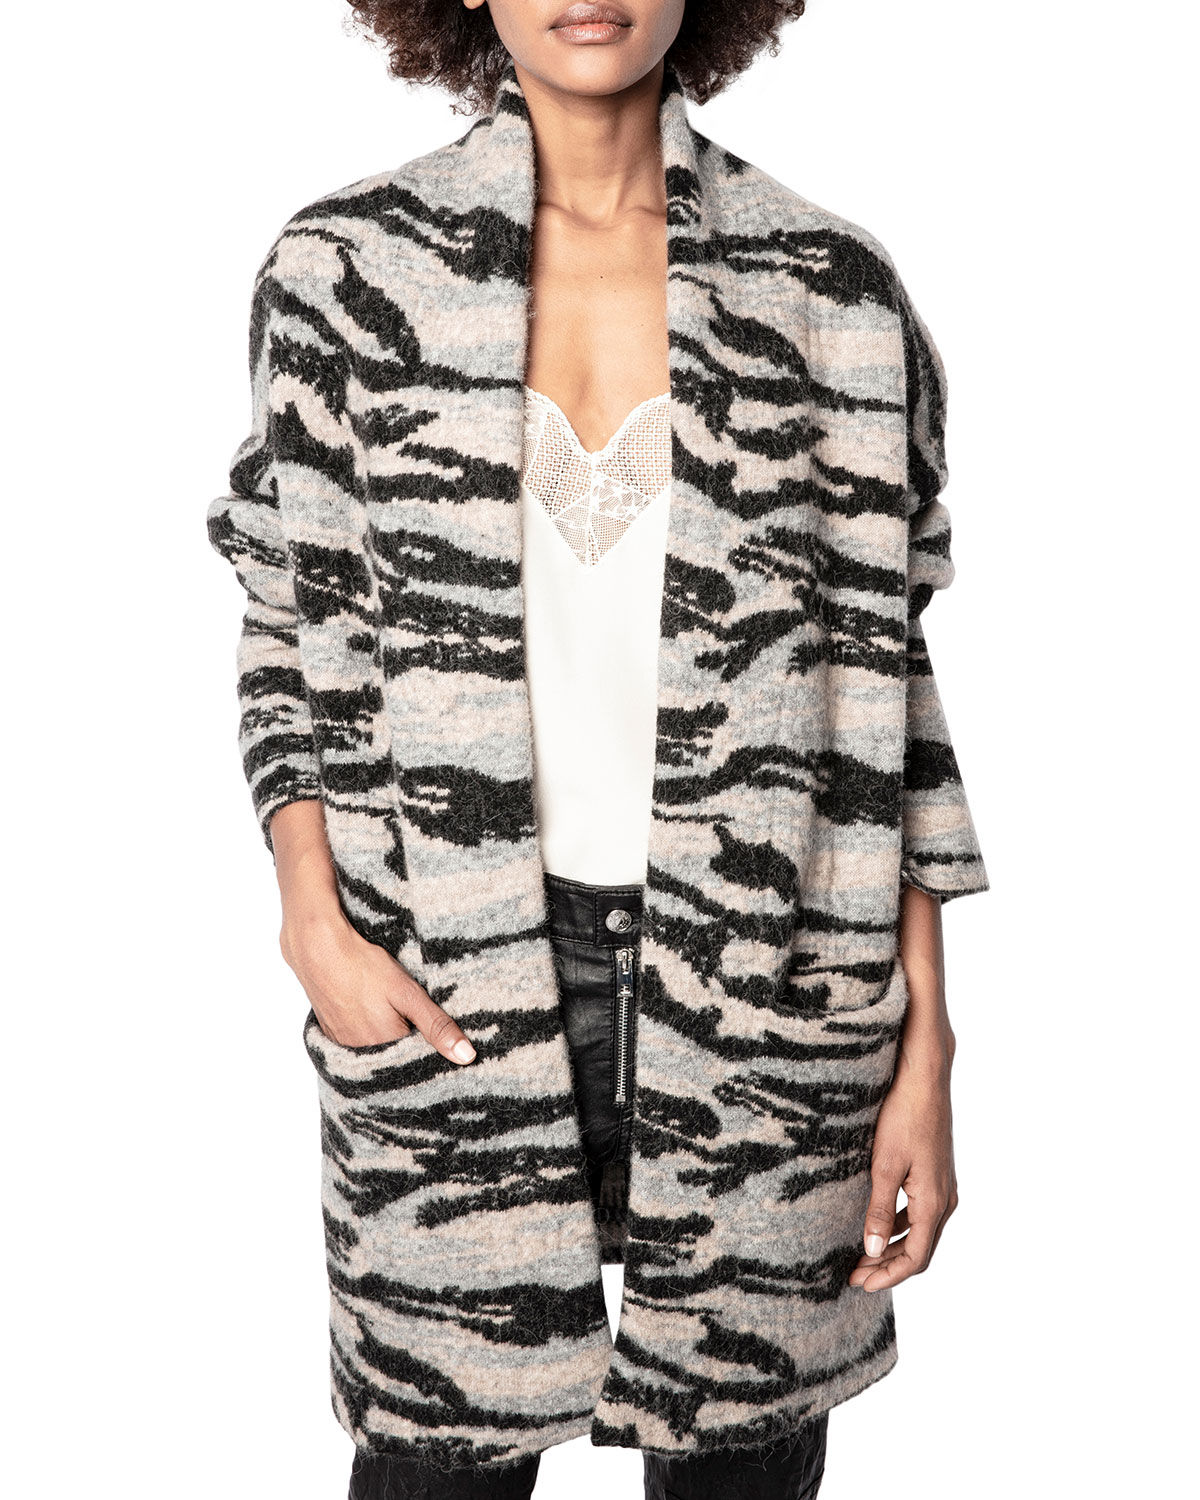 Zadig & Voltaire MIA WOOL-BLEND CAMO JACQUARD CARDIGAN